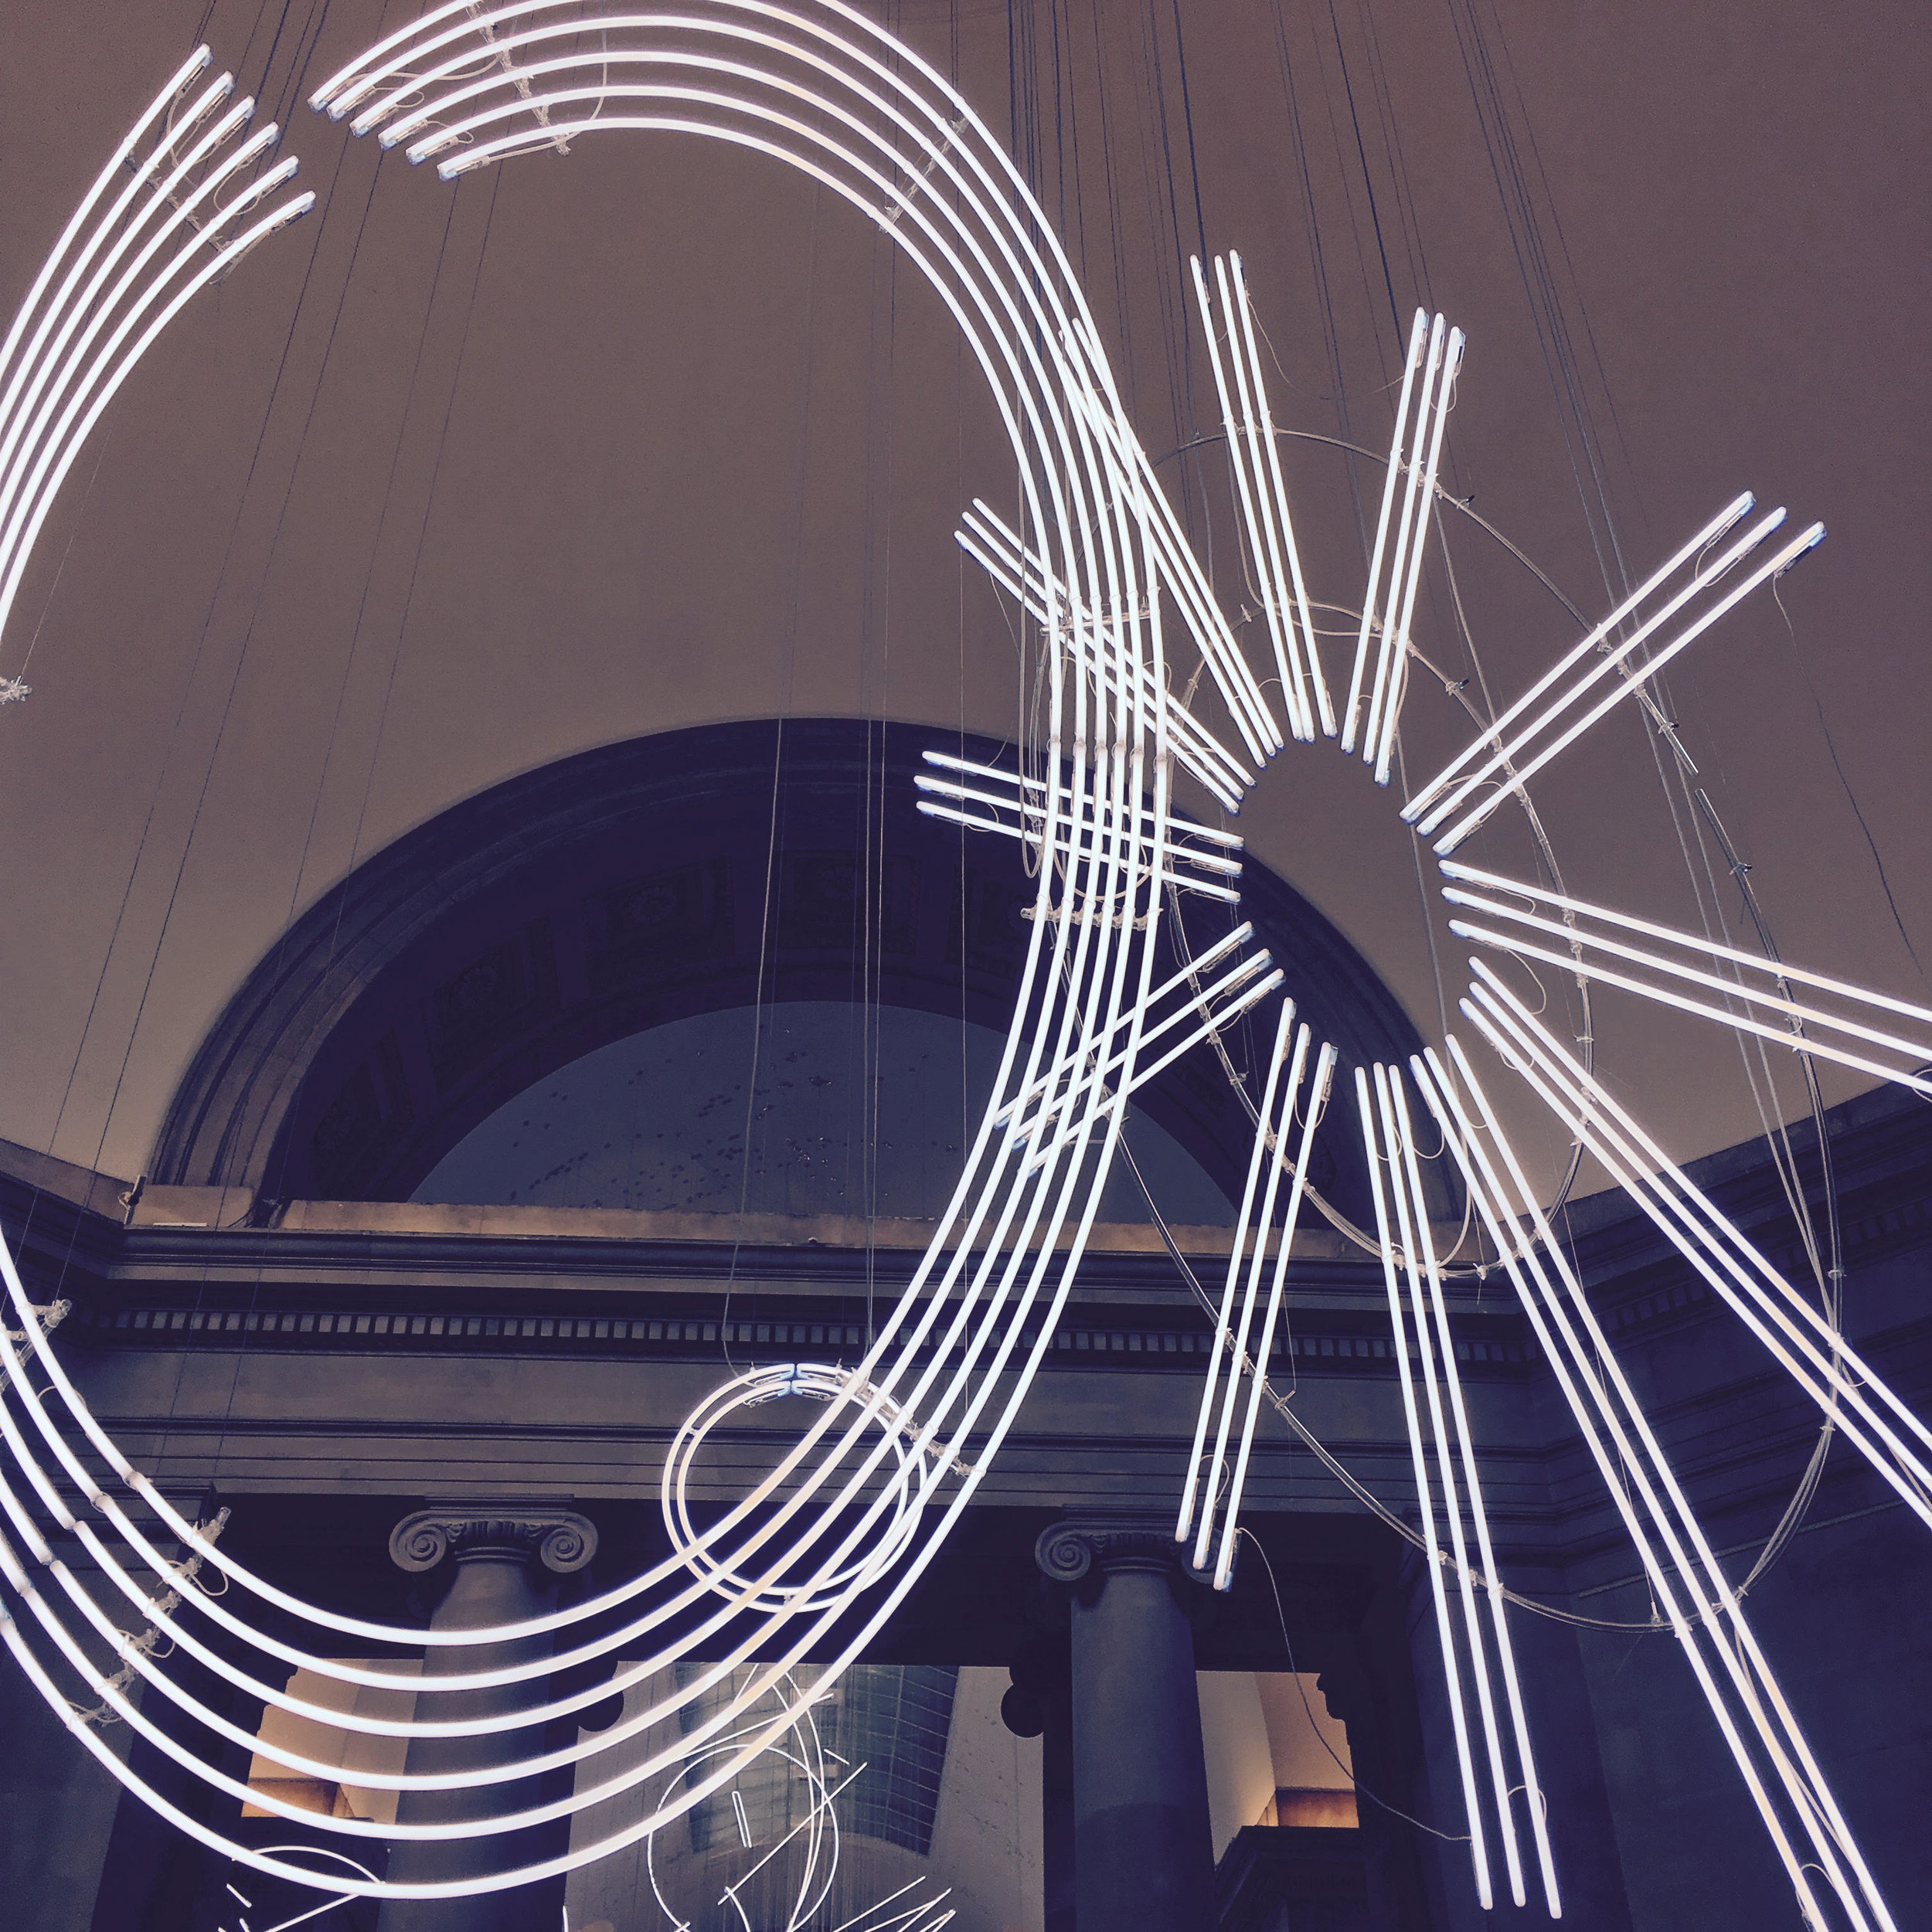 Forms in Space... by Light (in Time) by Cerith Wyn Evans